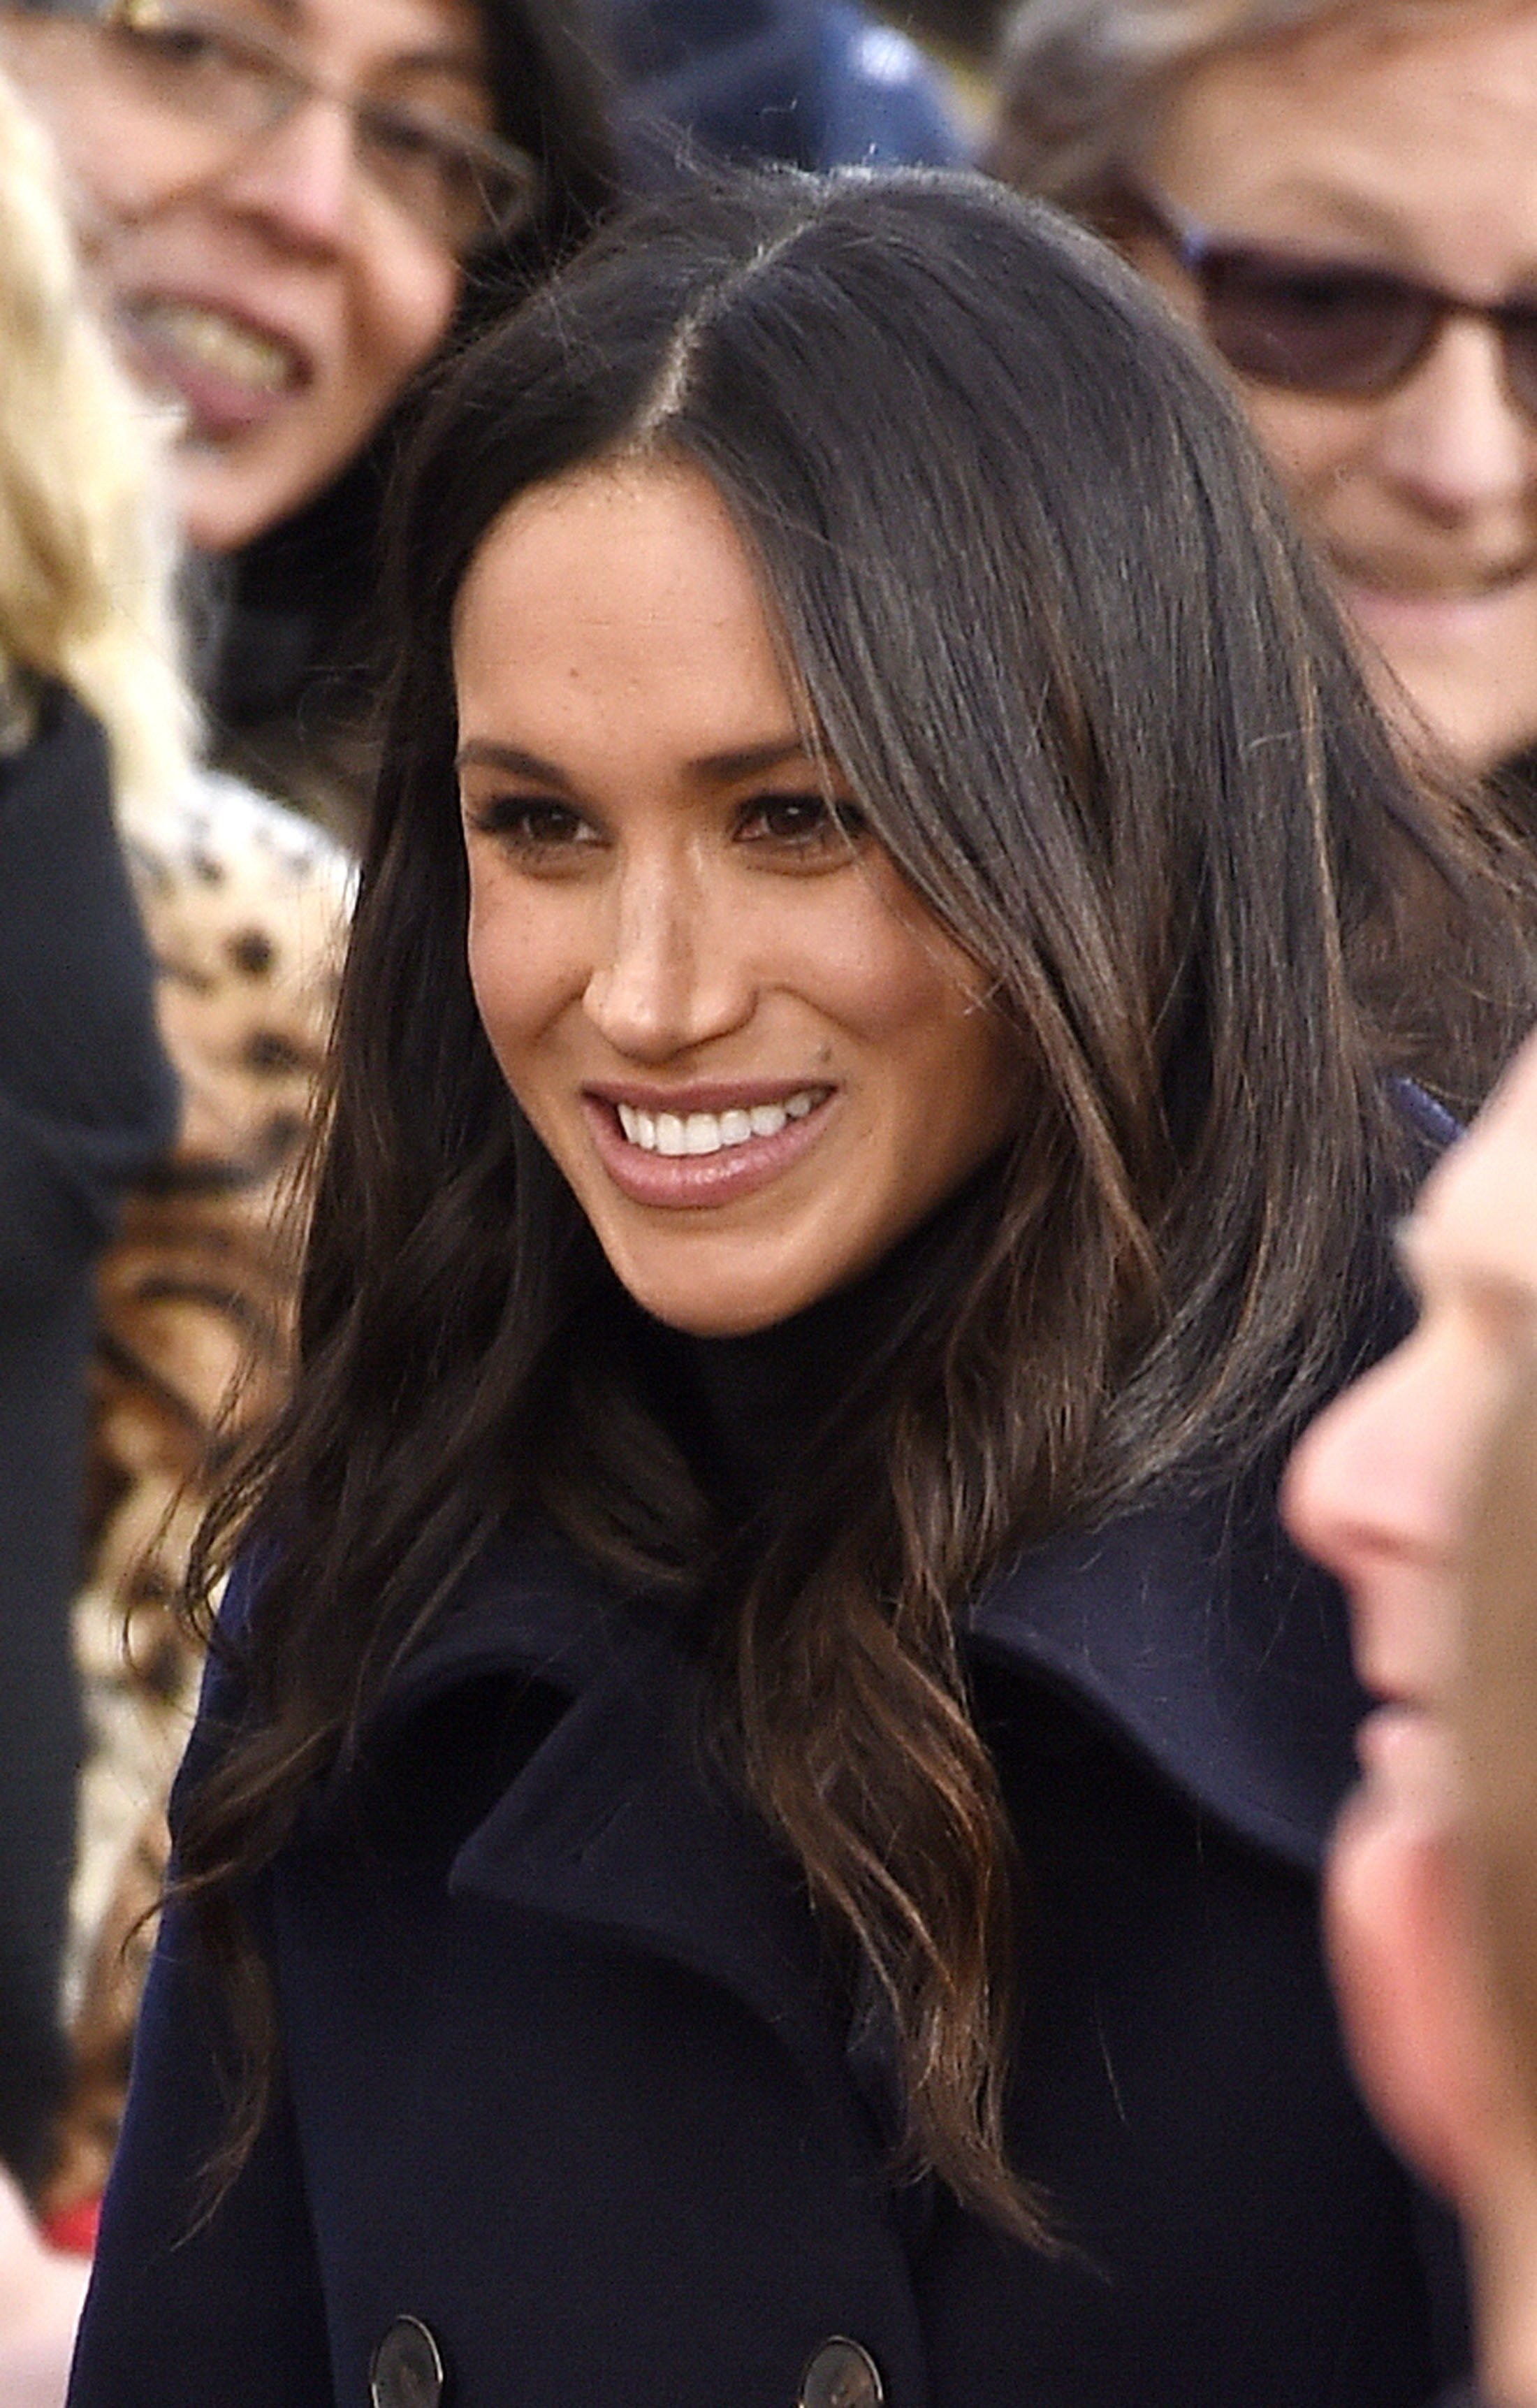 Nottingham, UNITED KINGDOM  - The newly-engaged couple Prince Harry and Meghan Markle make a public appearance during their visit to Nottingham raising awareness of – HIV/AIDS and youth crime. The couple visit the Nottingham Contemporary which will be hosting a Terrence Higgins Trust World AIDS Day charity fair.  Pictured: Meghan Markle  BACKGRID UK 1 DECEMBER 2017   UK: +44 208 344 2007 / uksales@backgrid.com  USA: +1 310 798 9111 / usasales@backgrid.com  *UK Clients - Pictures Containing Children Please Pixelate Face Prior To Publication*, Image: 356626320, License: Rights-managed, Restrictions: , Model Release: no, Credit line: Profimedia, Xposurephotos